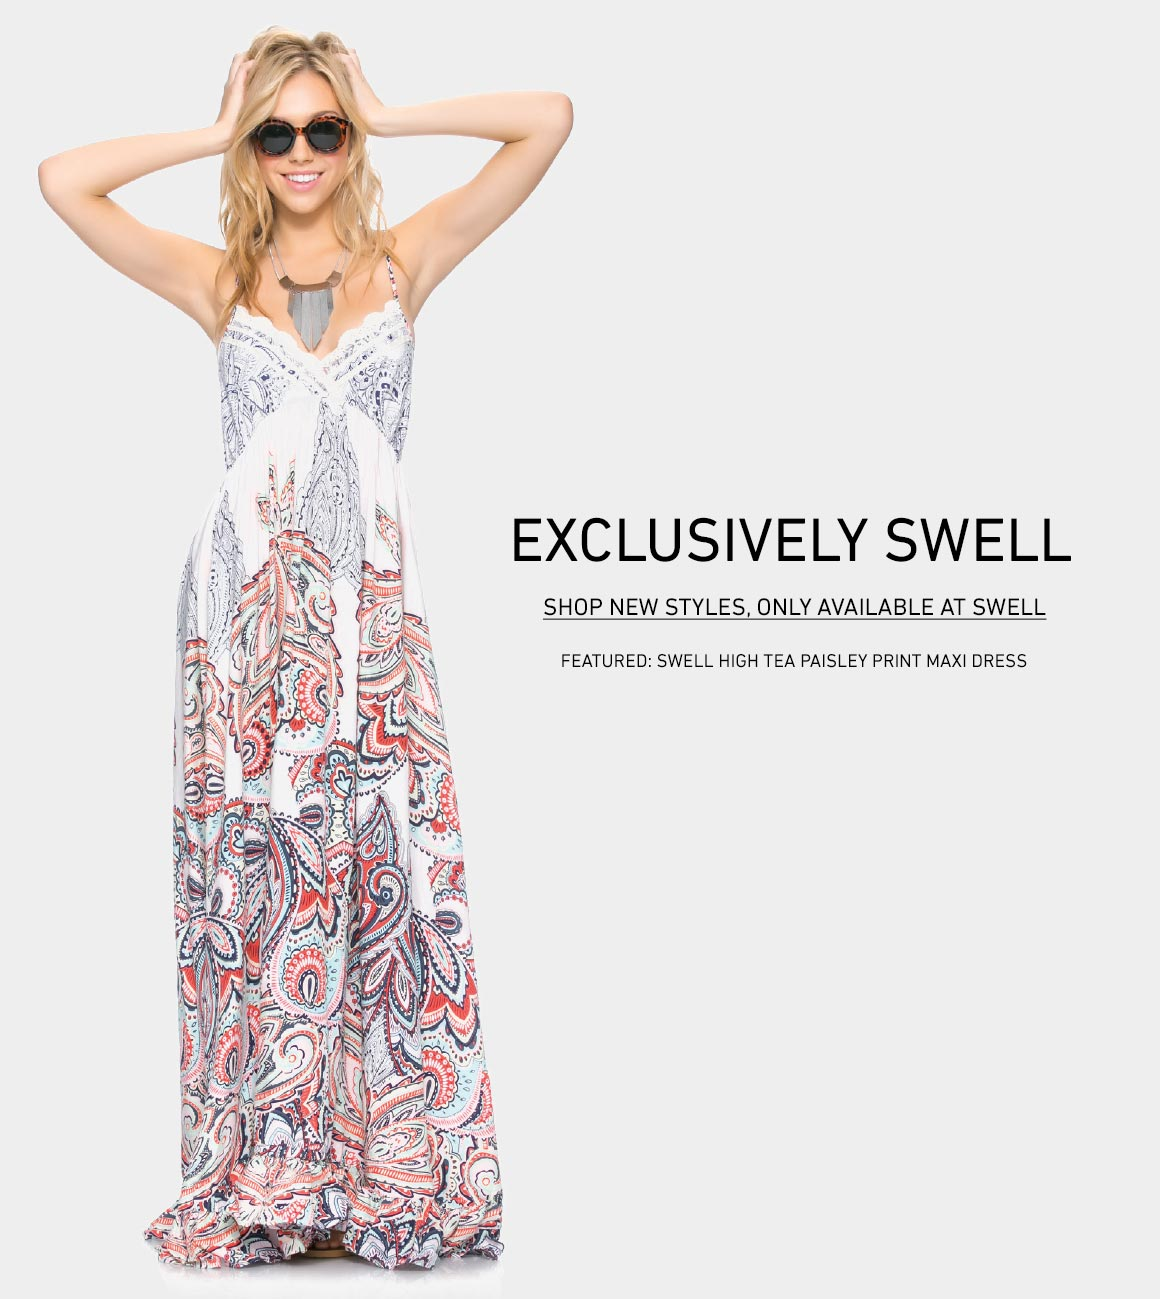 Shop New SWELL Exclusives